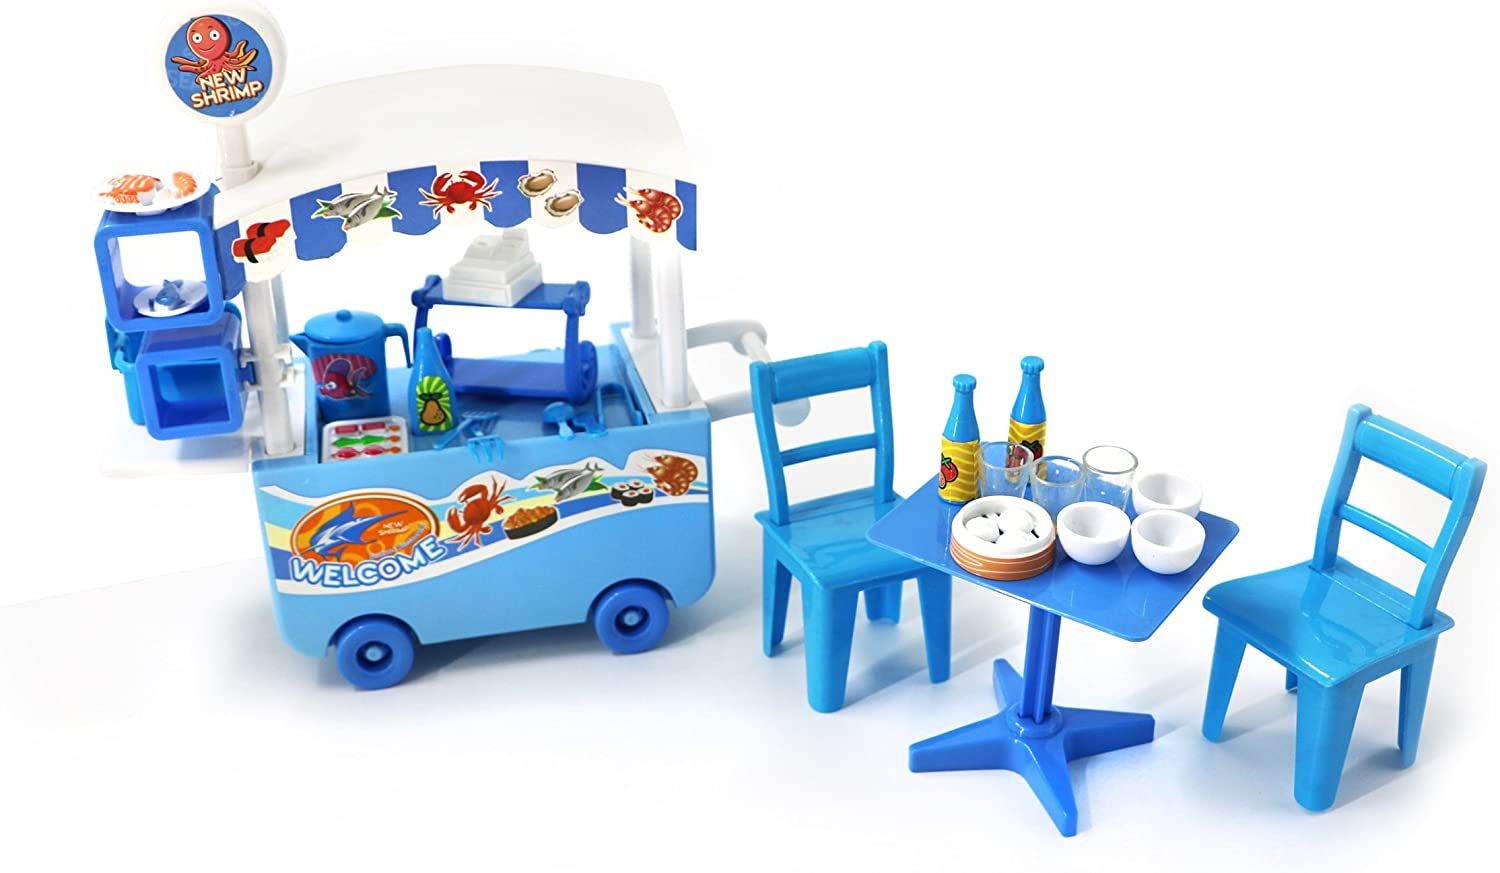 Toyzabo Seafood Truck Toy Seafood Toy Food Truck Food Truck Toys for Toddlers Toys Food Truck Food Toy Truck Food Truck Toys for Kids Great Gift for Christmas, Holidays, Birthdays for Boys and Girls